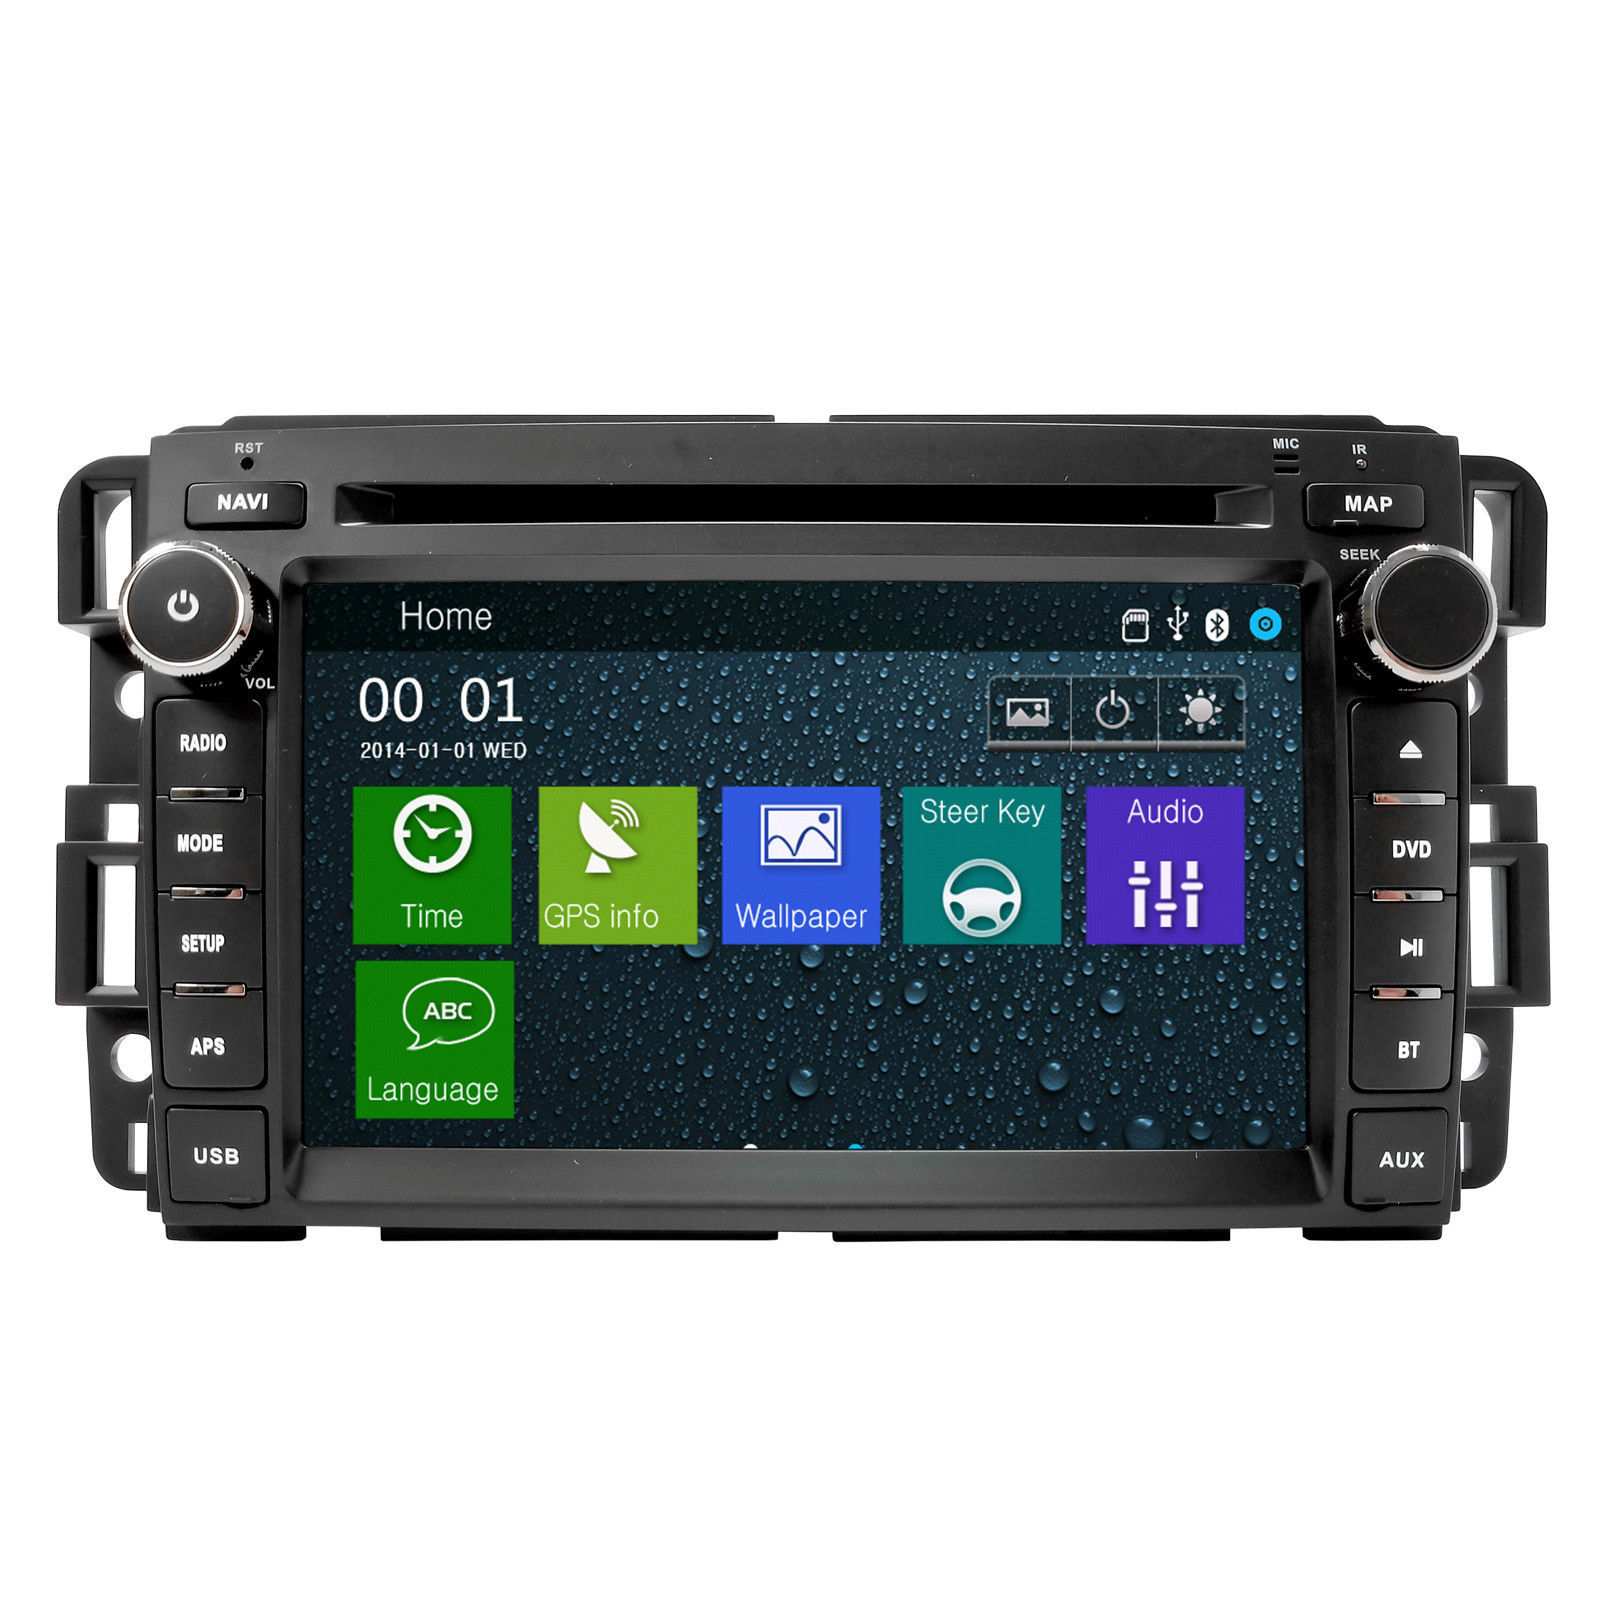 IN DASH DVD GPS NAVIGATION MADE FOR GMC/BUICK/CHEVROLET 2007-2012 VEHICLES